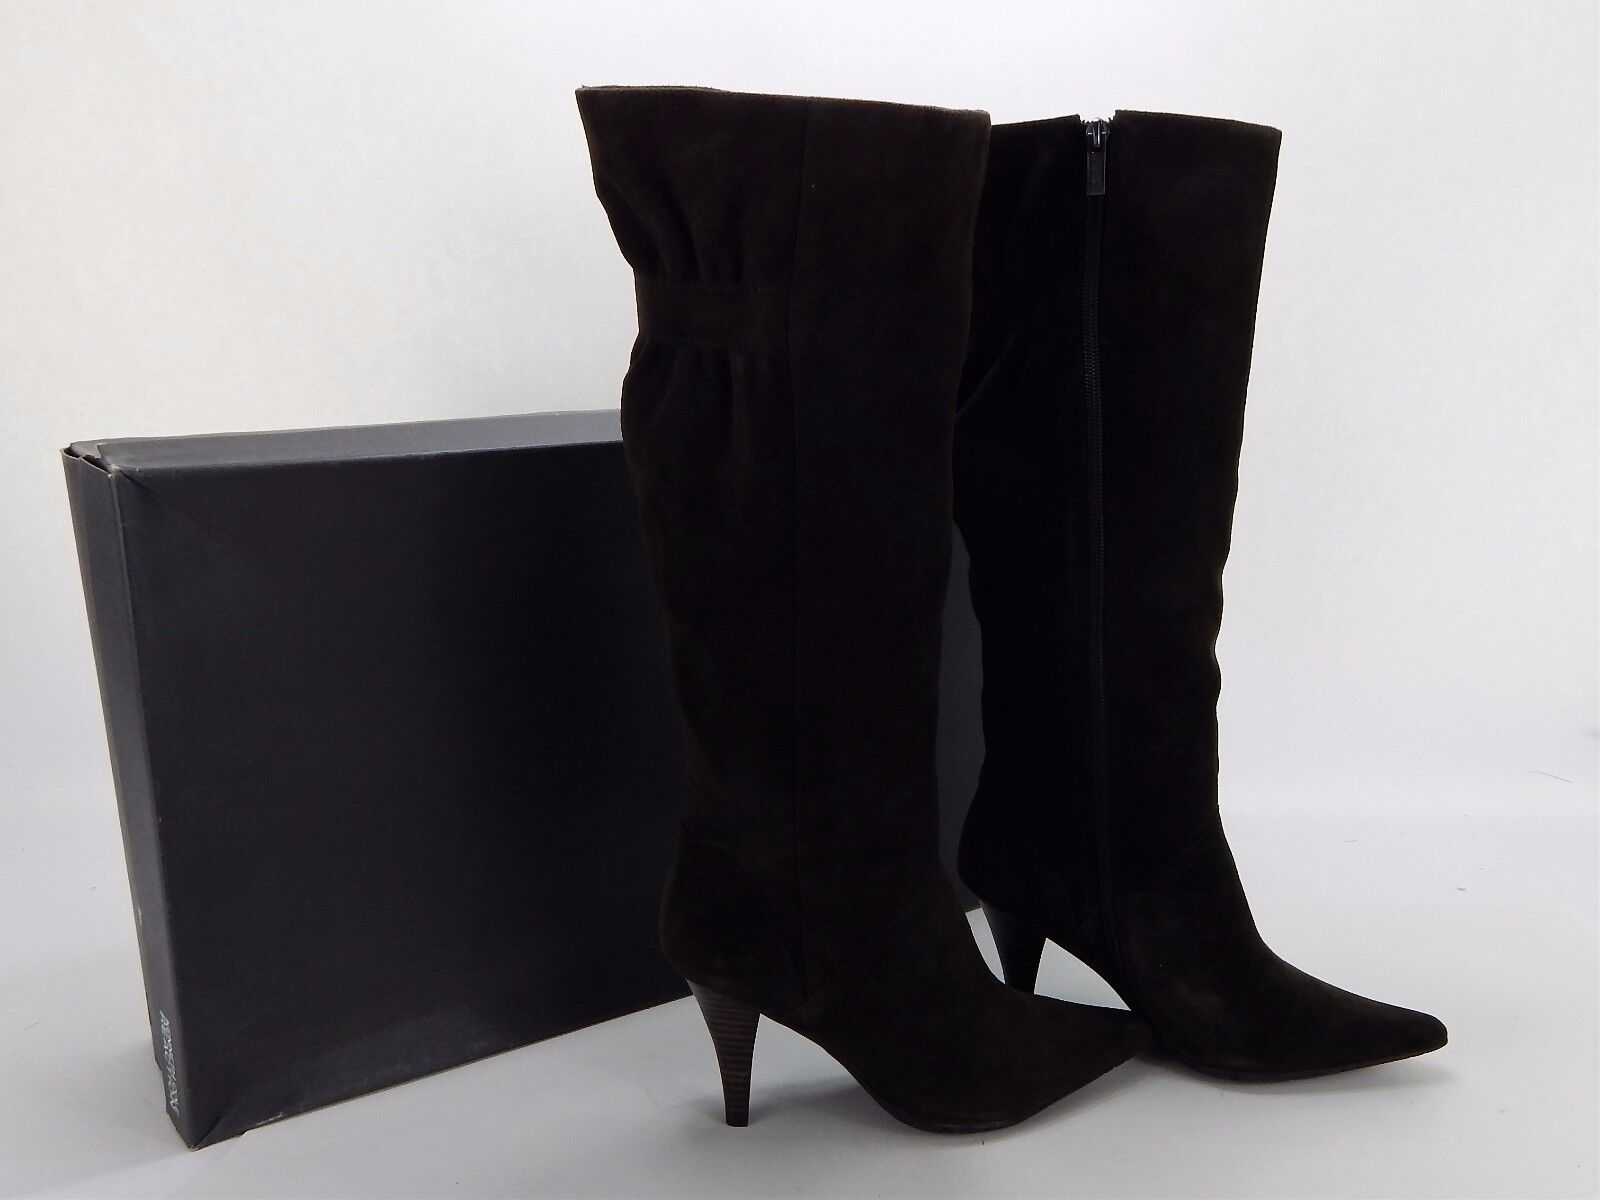 New Women's Kenneth Cole Brown Suede  Knee High  Go for it  Boots Size 6.5 M